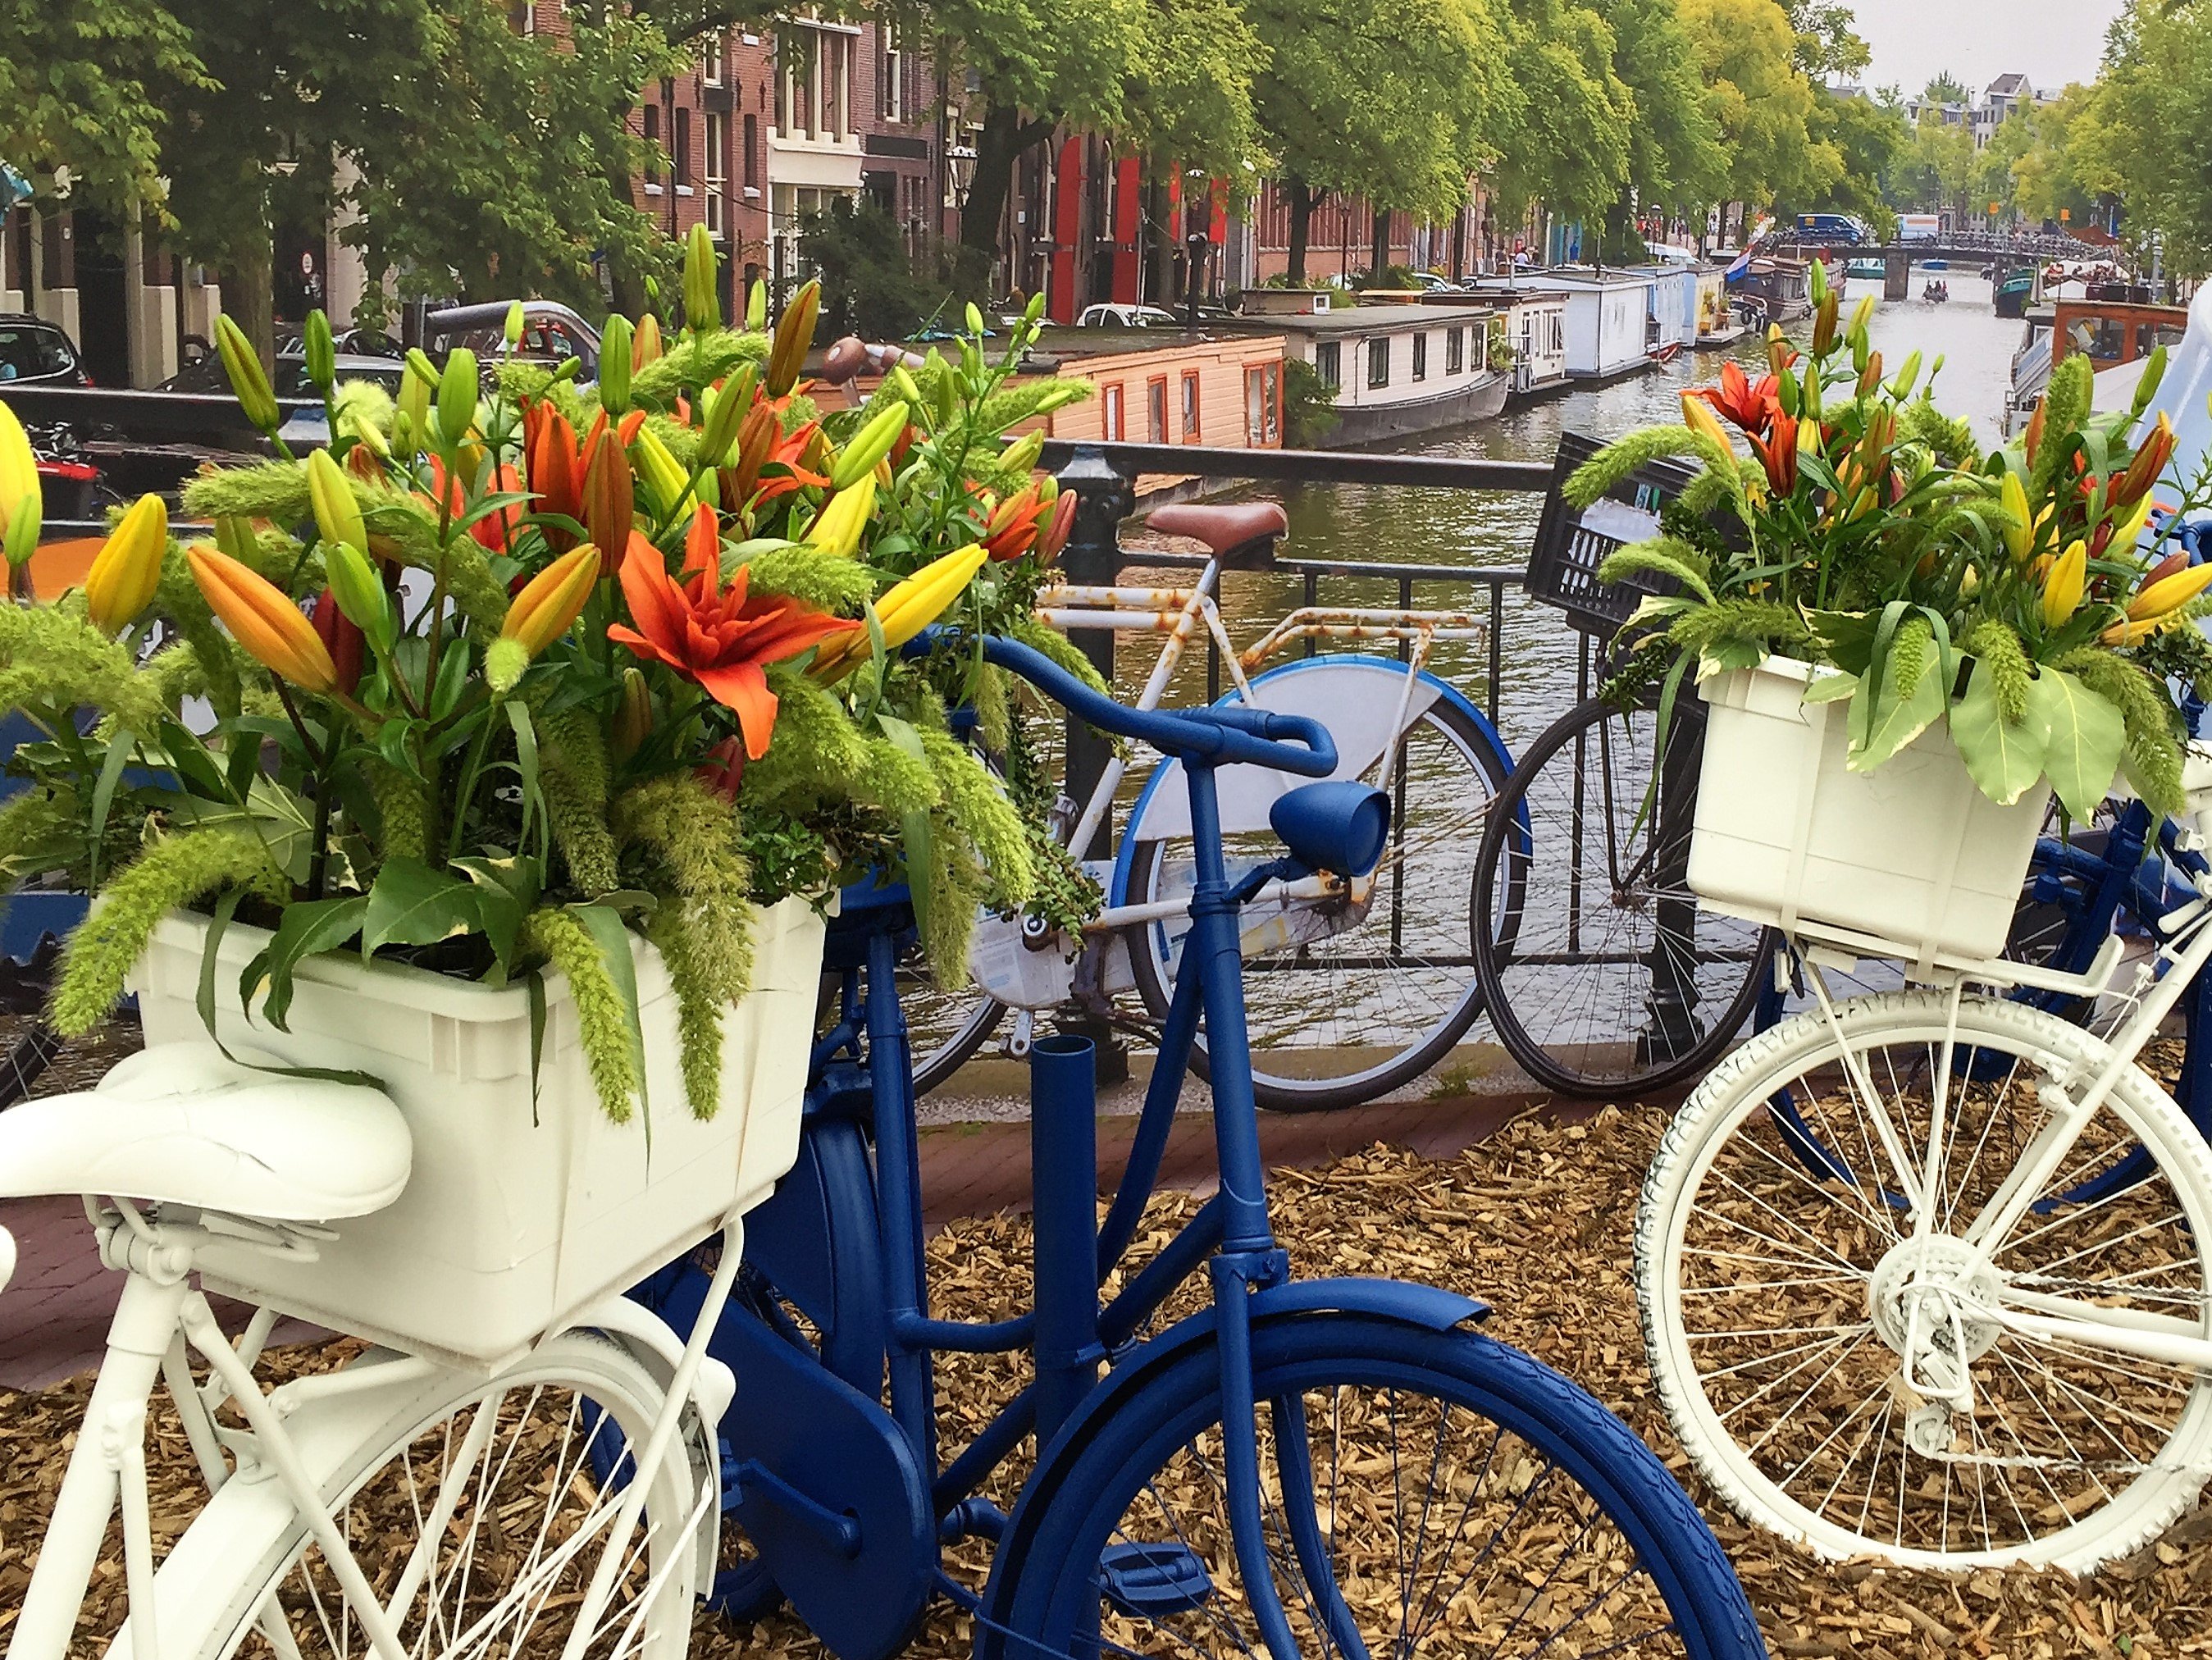 canals and flowers - Amsterdam